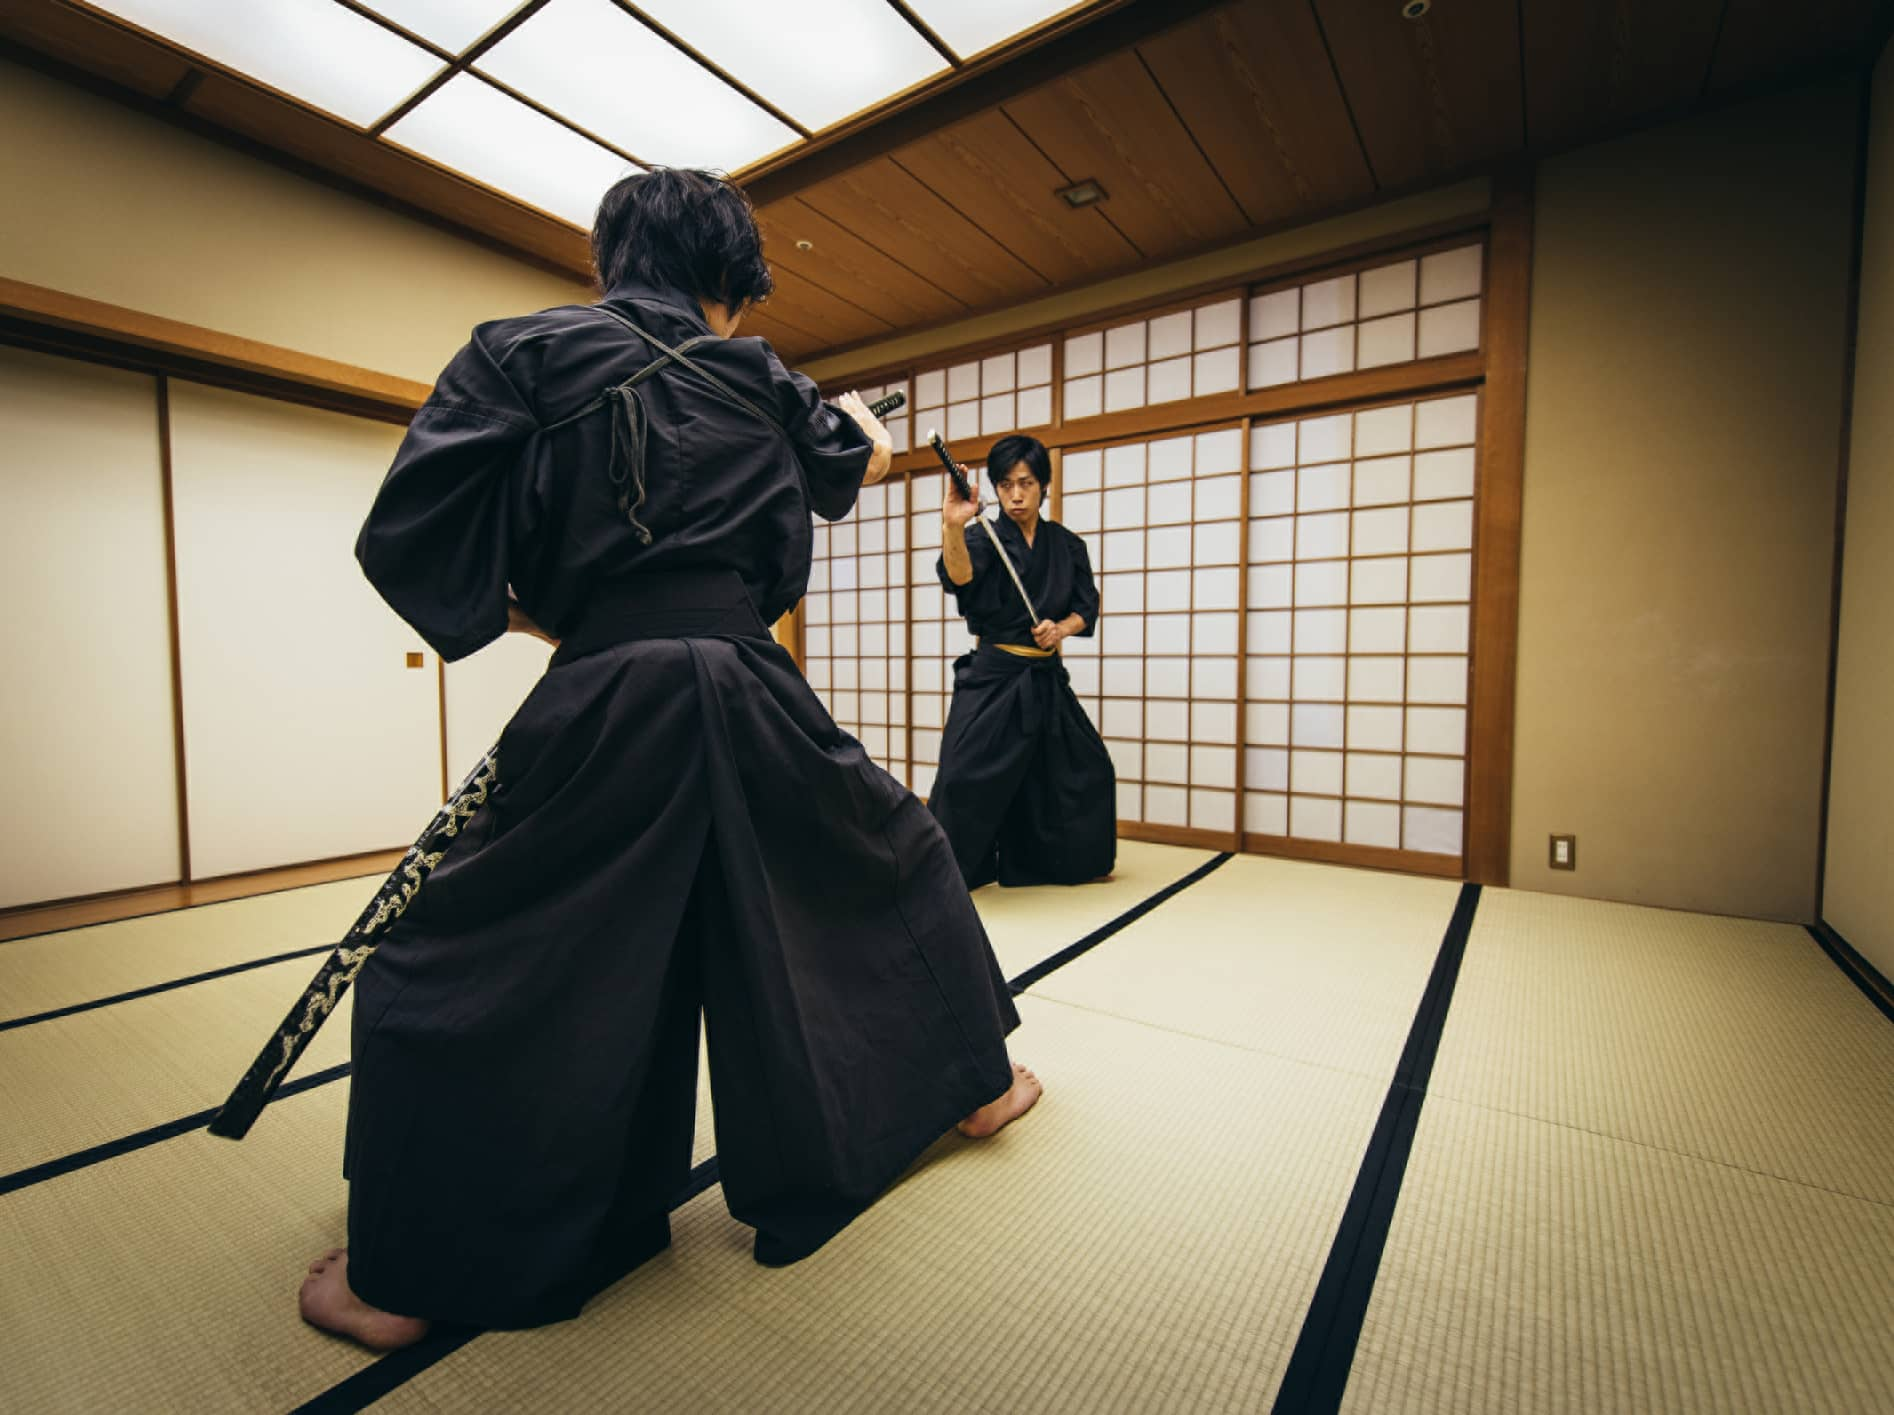 Kyoto samurai sword fighting